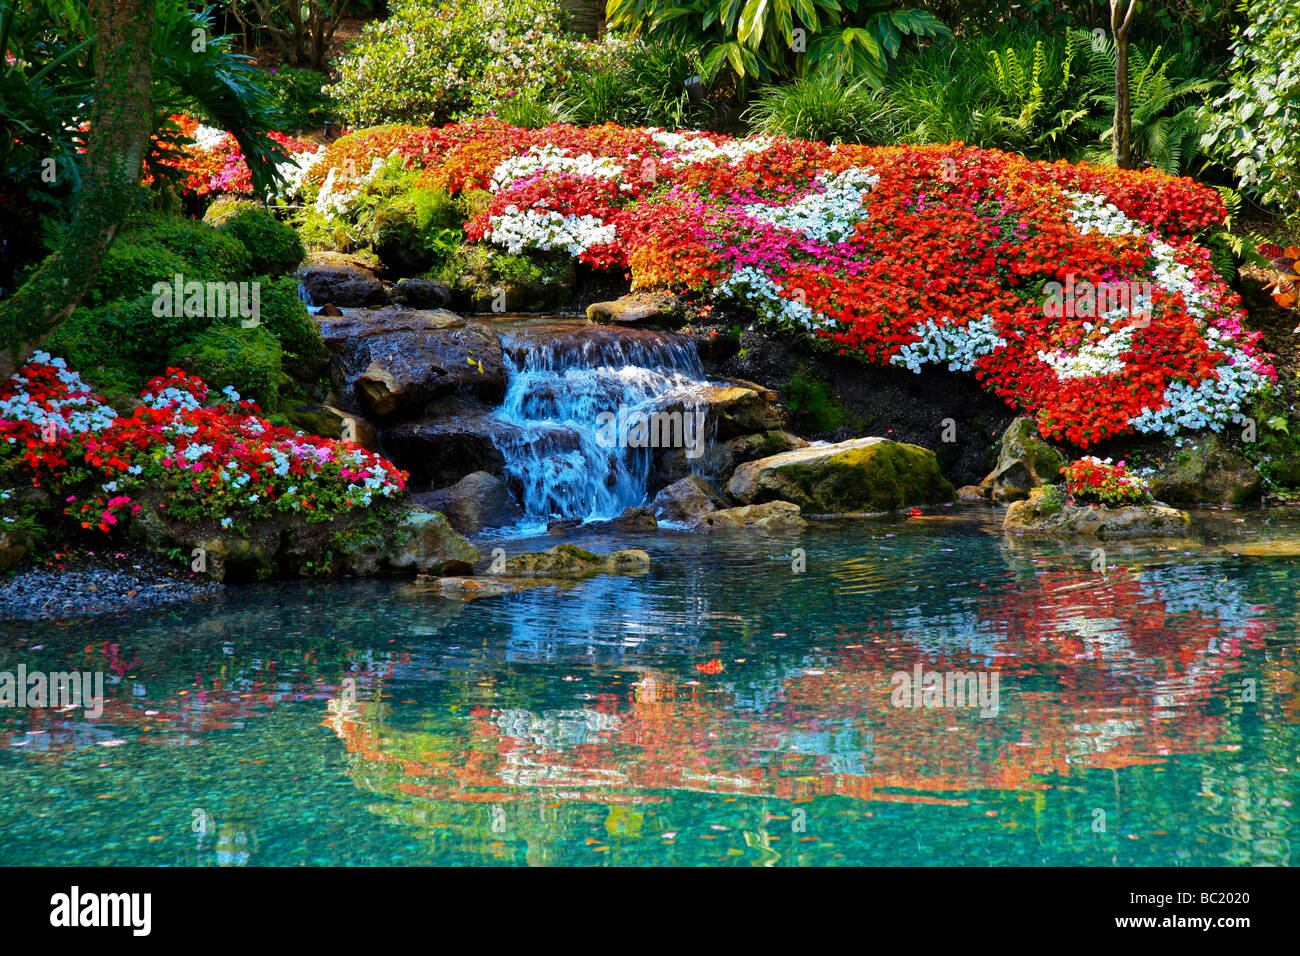 A Beautiful Flower Garden With A Waterfall In Tropical Souther Florida Usa  America   Beautiful Flower